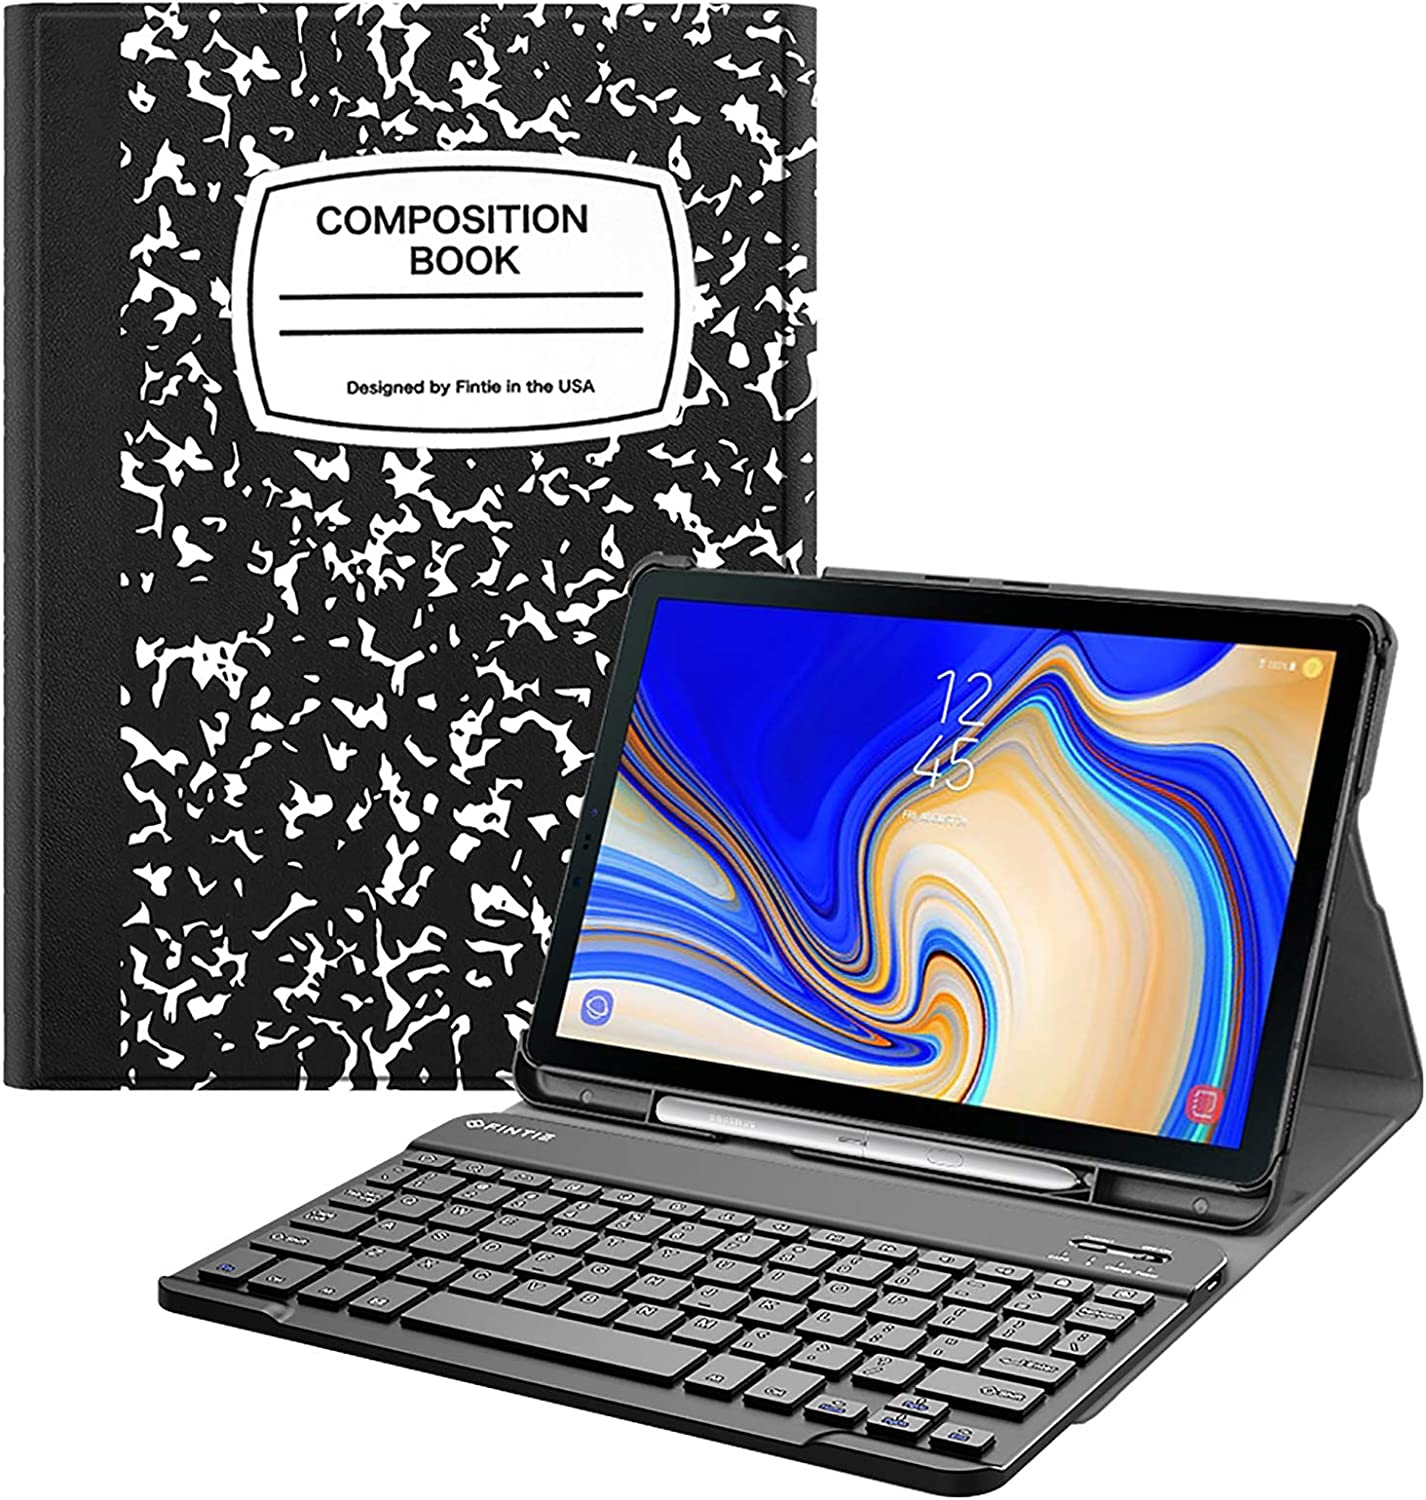 Fintie Keyboard Case for Samsung Galaxy Tab S4 10.5 2018 Model SM-T830/T835/T837, Slim Shell Lightweight Stand Cover with Detachable Wireless Bluetooth Keyboard, Composition Book